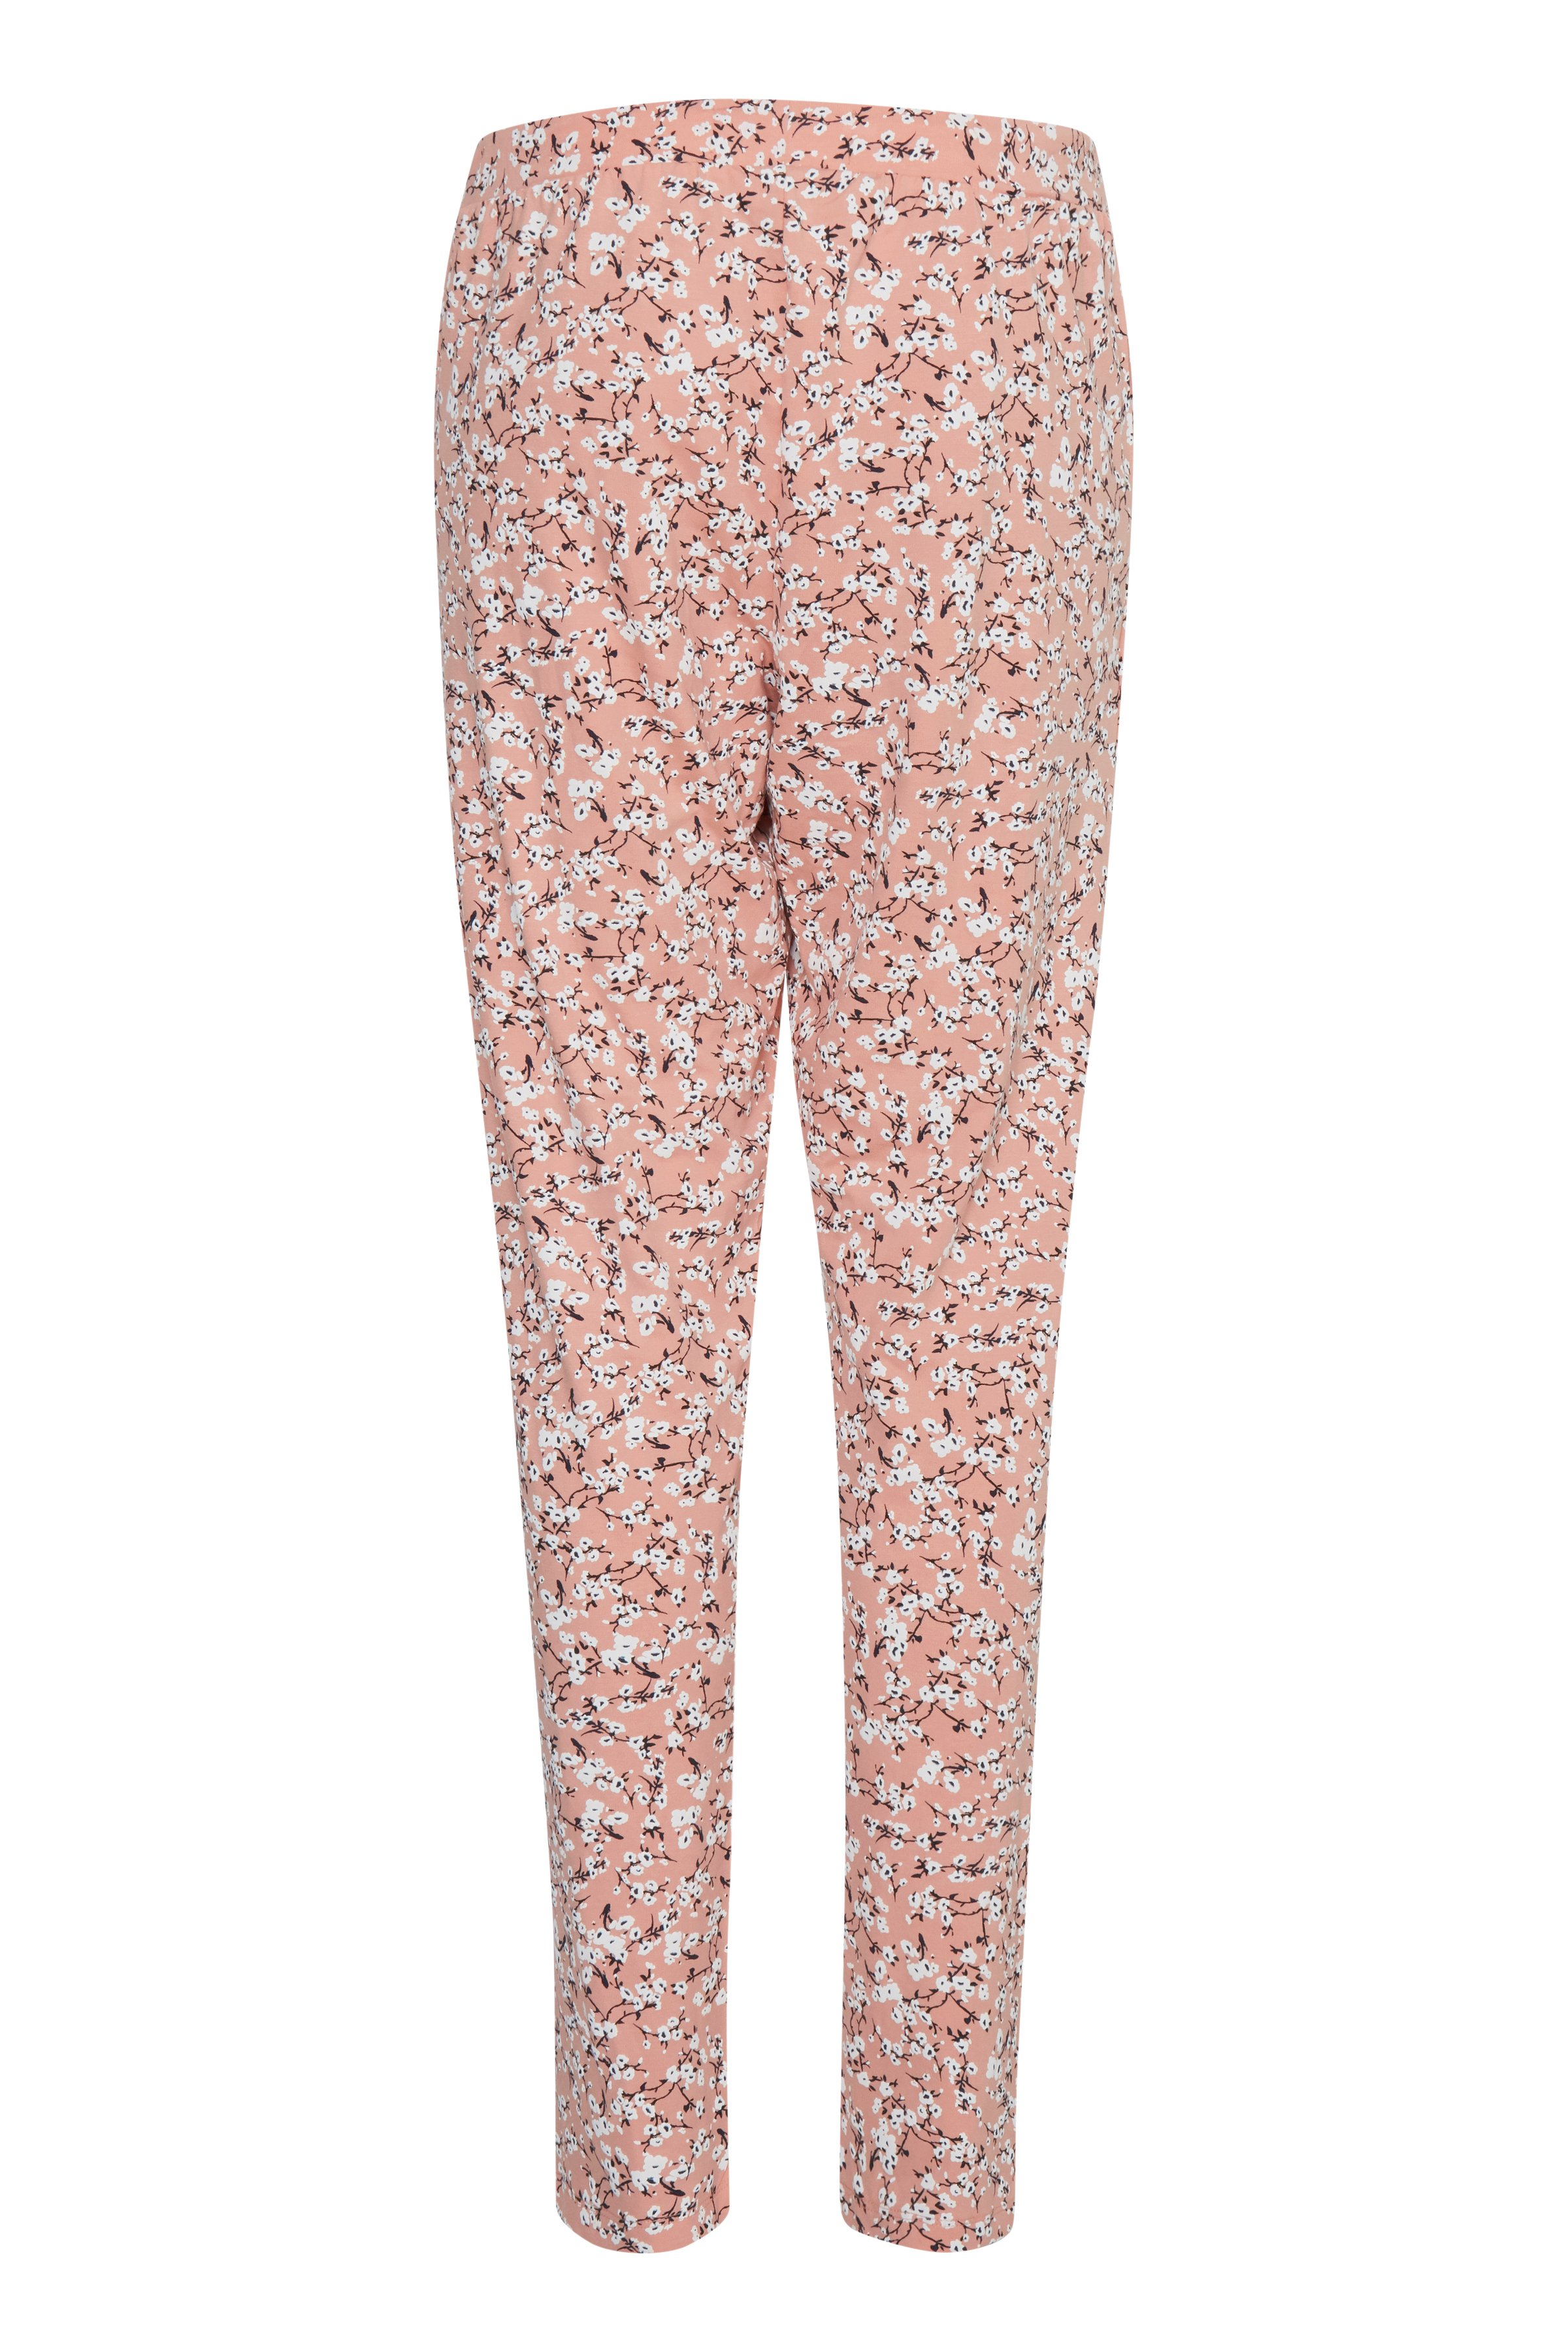 Coral Almond Pants Casual fra Ichi – Køb Coral Almond Pants Casual fra str. XS-XL her